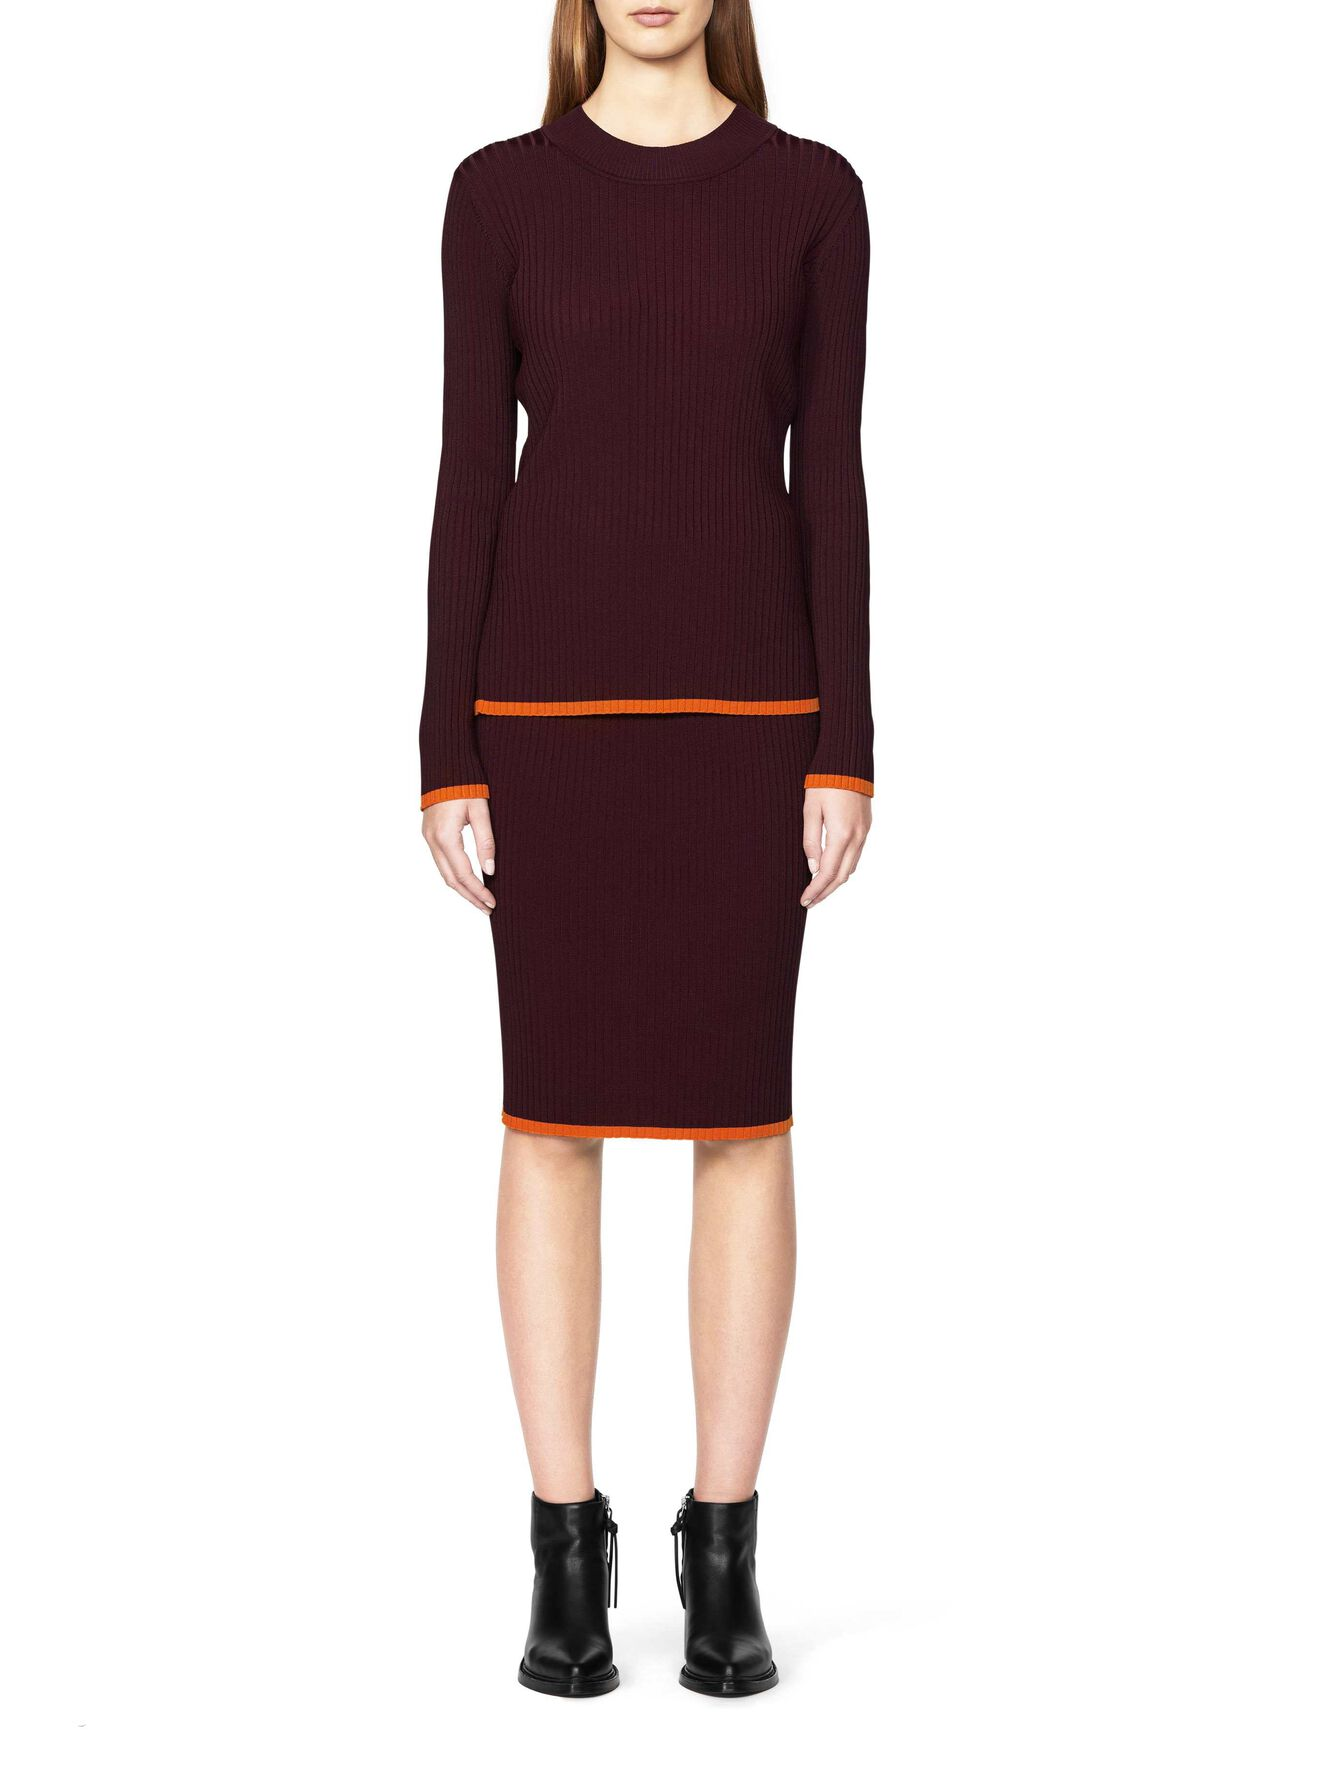 ELAIA SKIRT  in Noon Plum from Tiger of Sweden